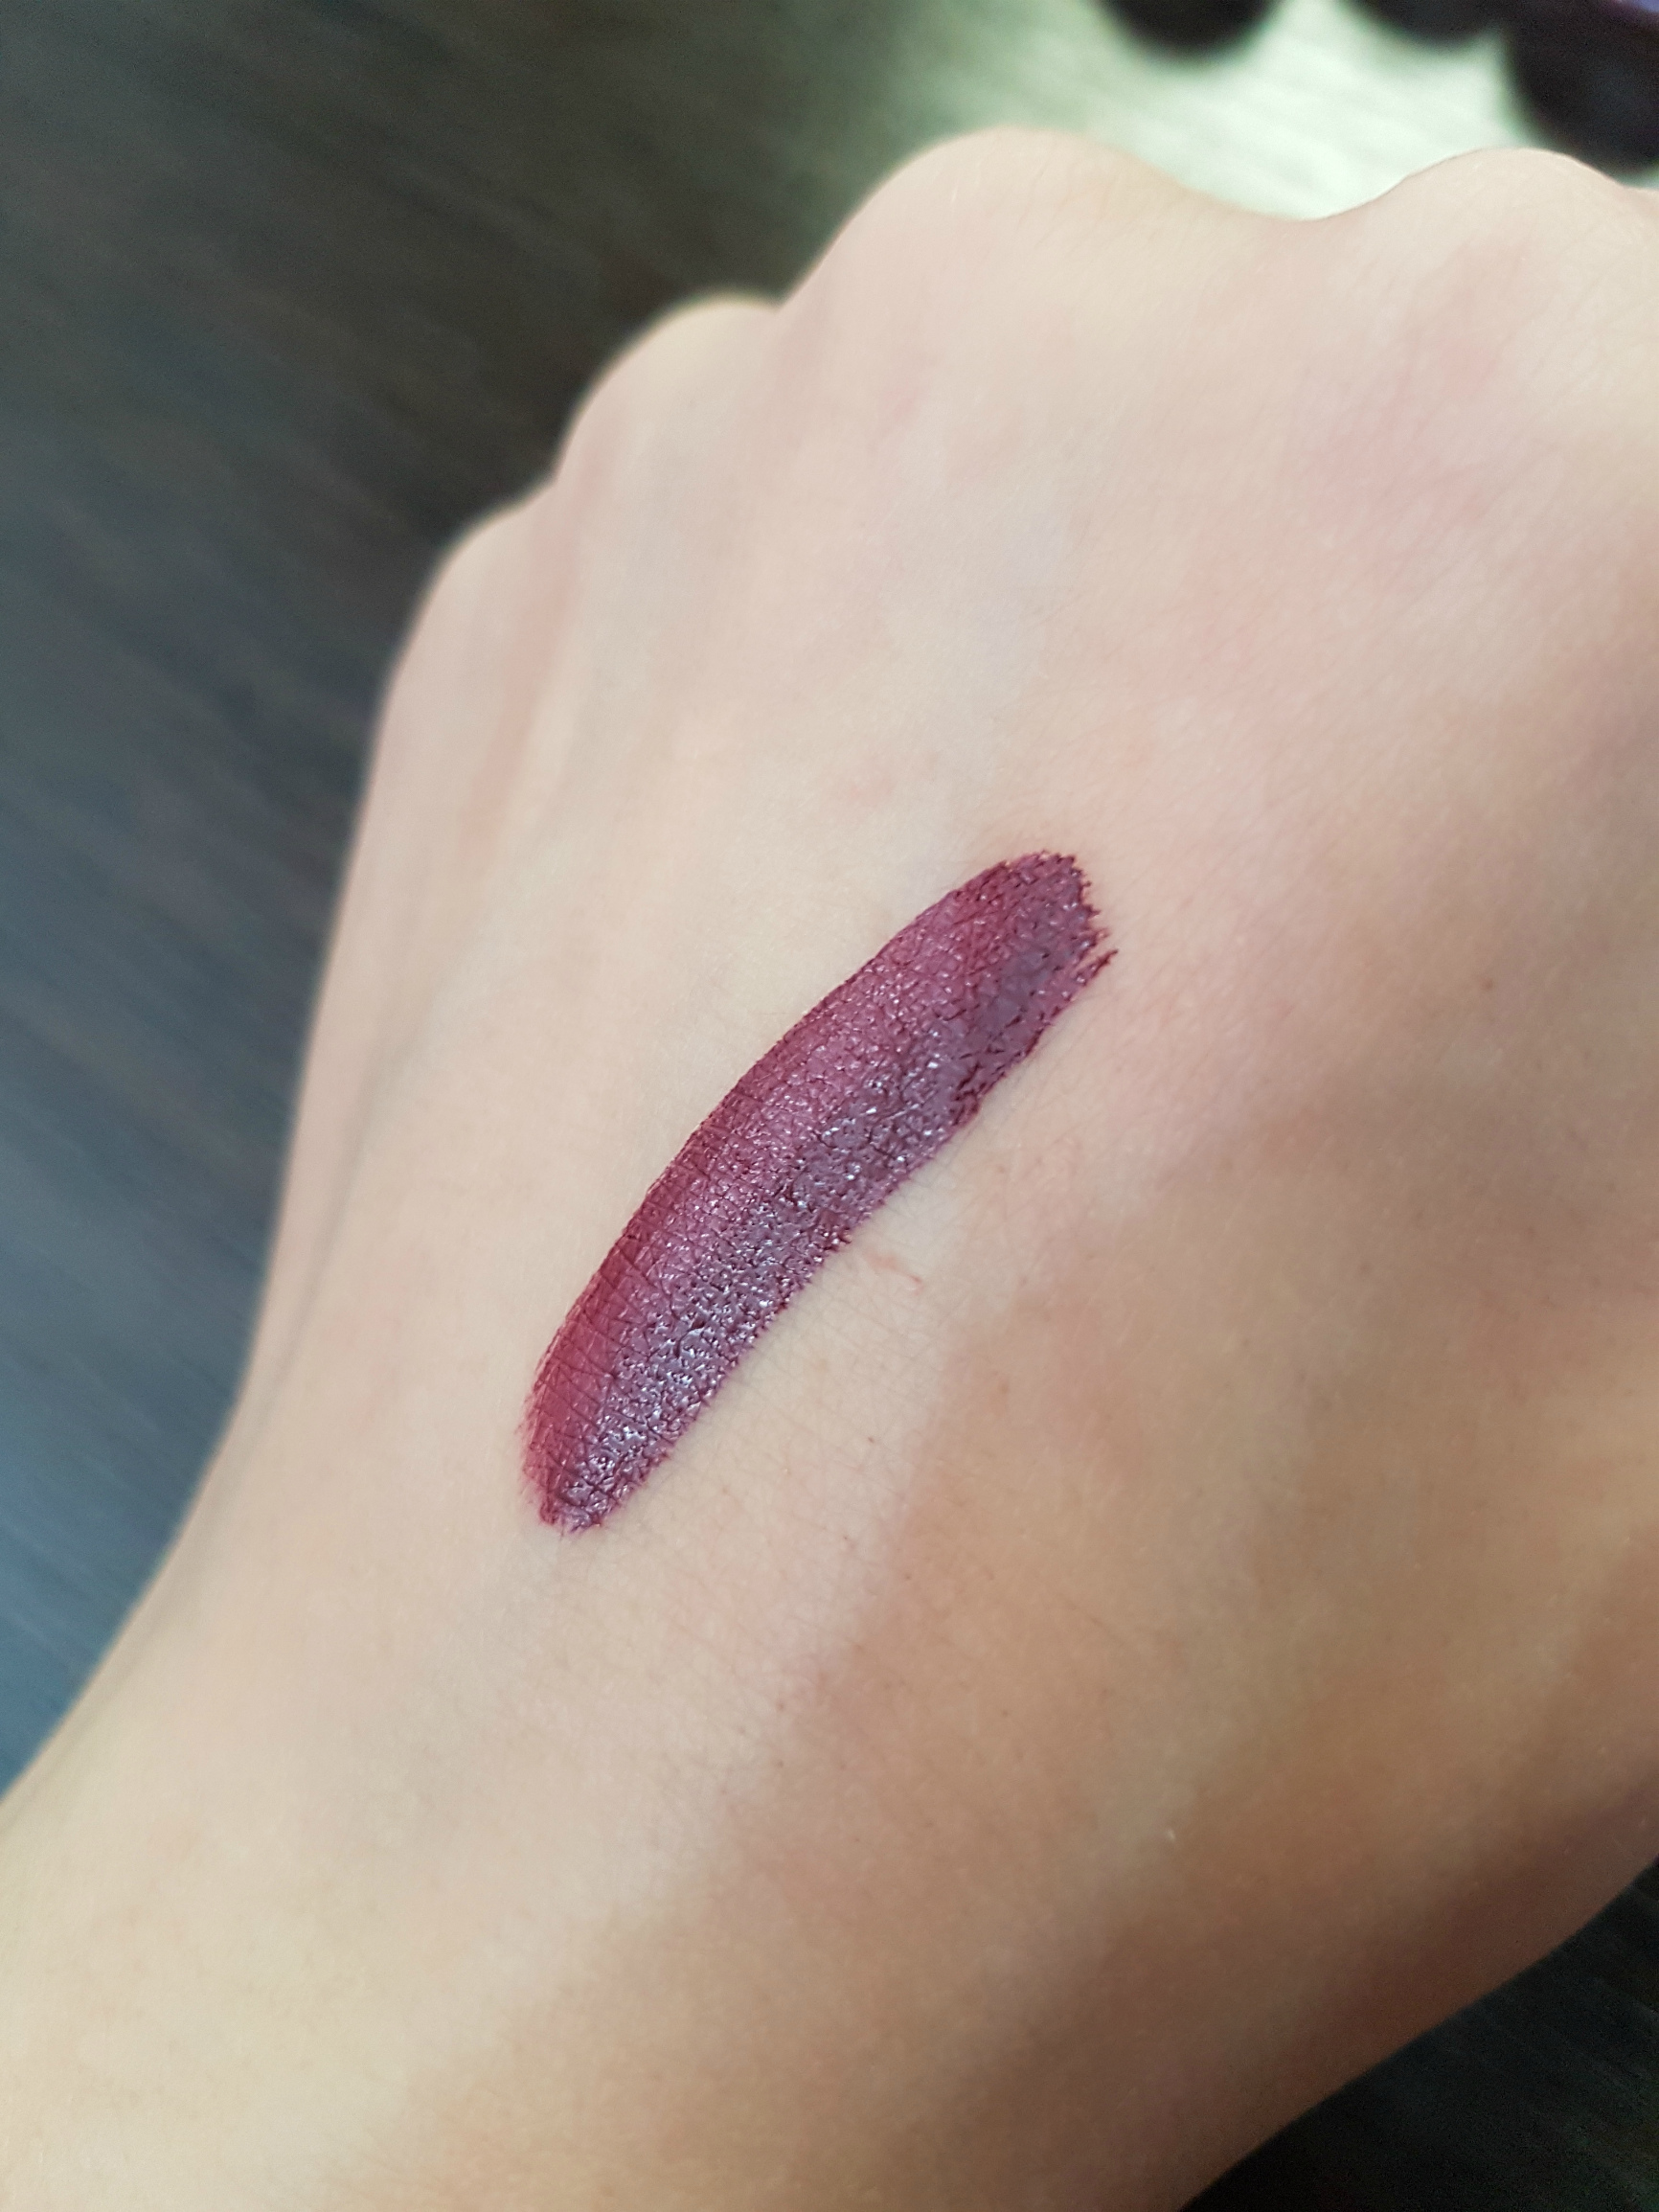 CAILYN Pure Lust Extreme Matte Tint Матовый тинт для губ тон 18 Imperialist